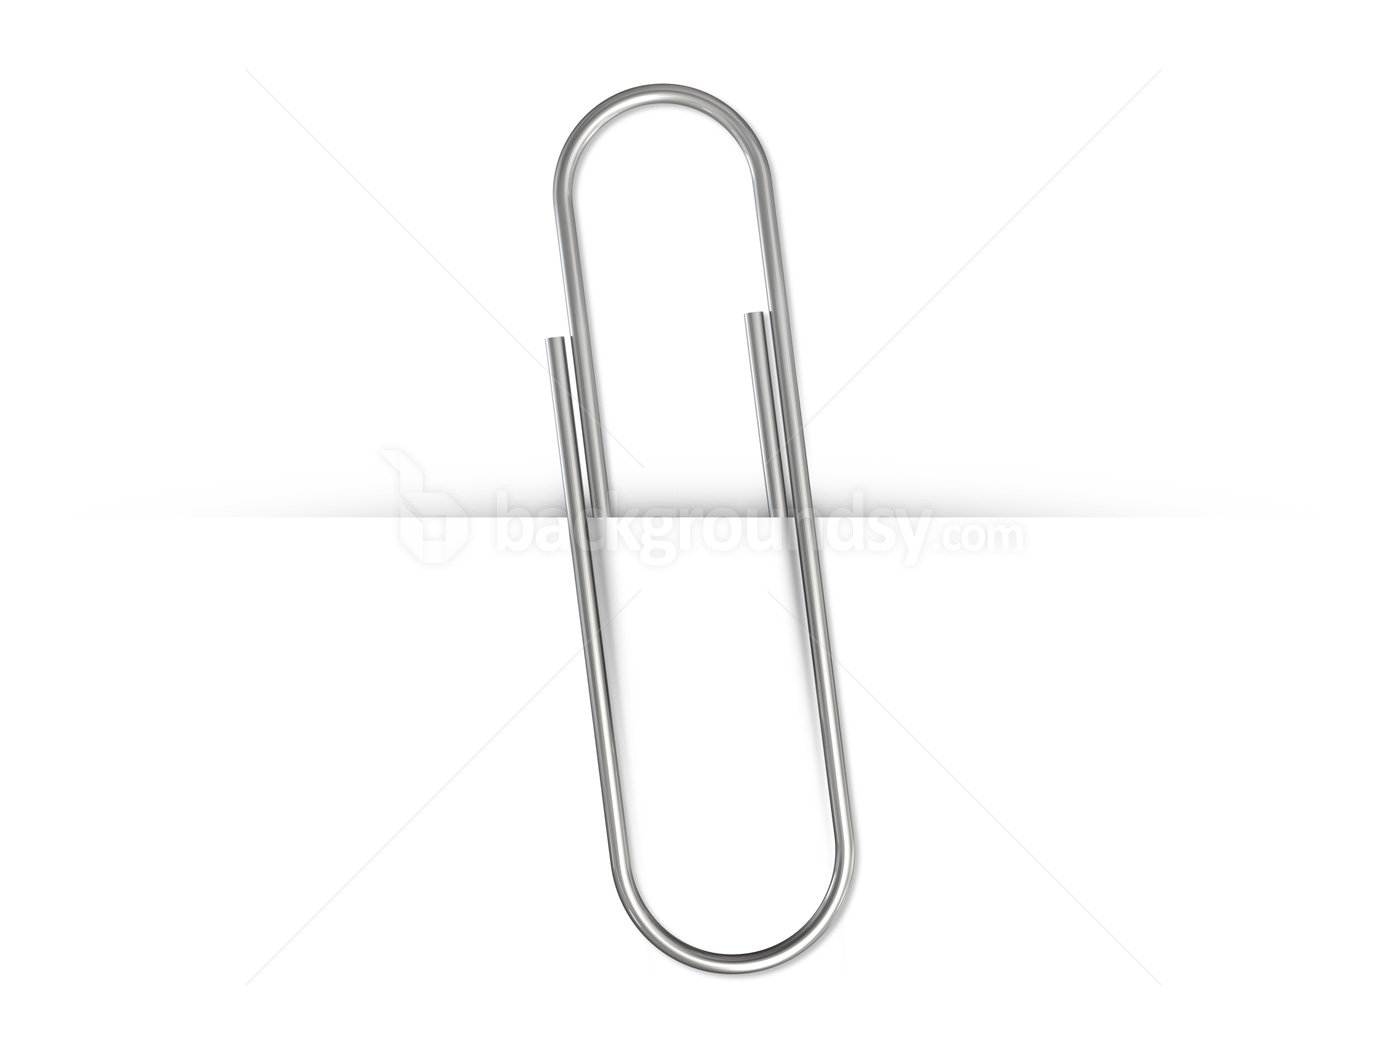 2 page resume paper clip